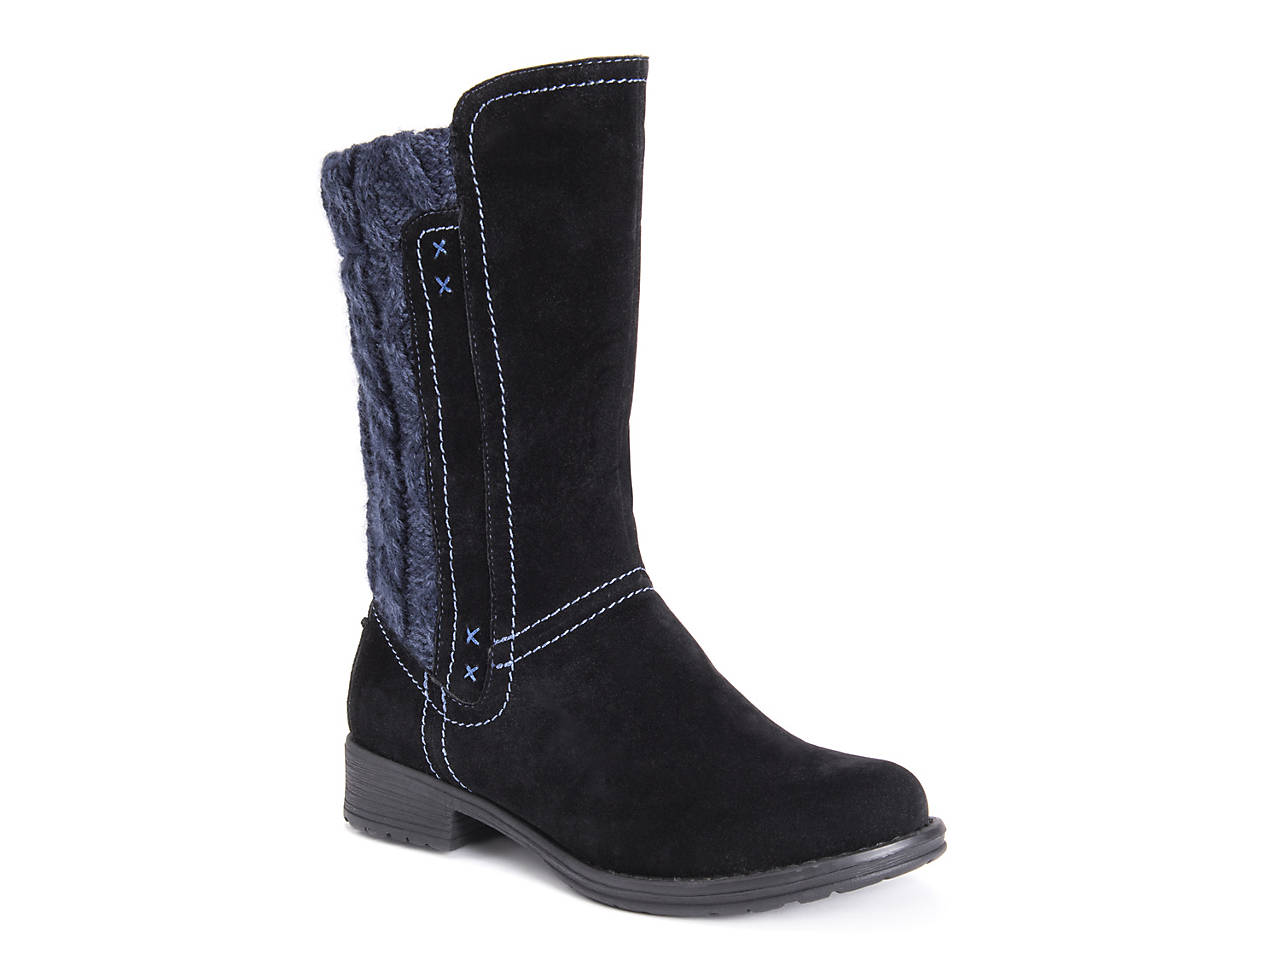 MUK LUKS Casey Women's ... Water-Resistant Boots collections cheap online 3pUZl0v4ZA